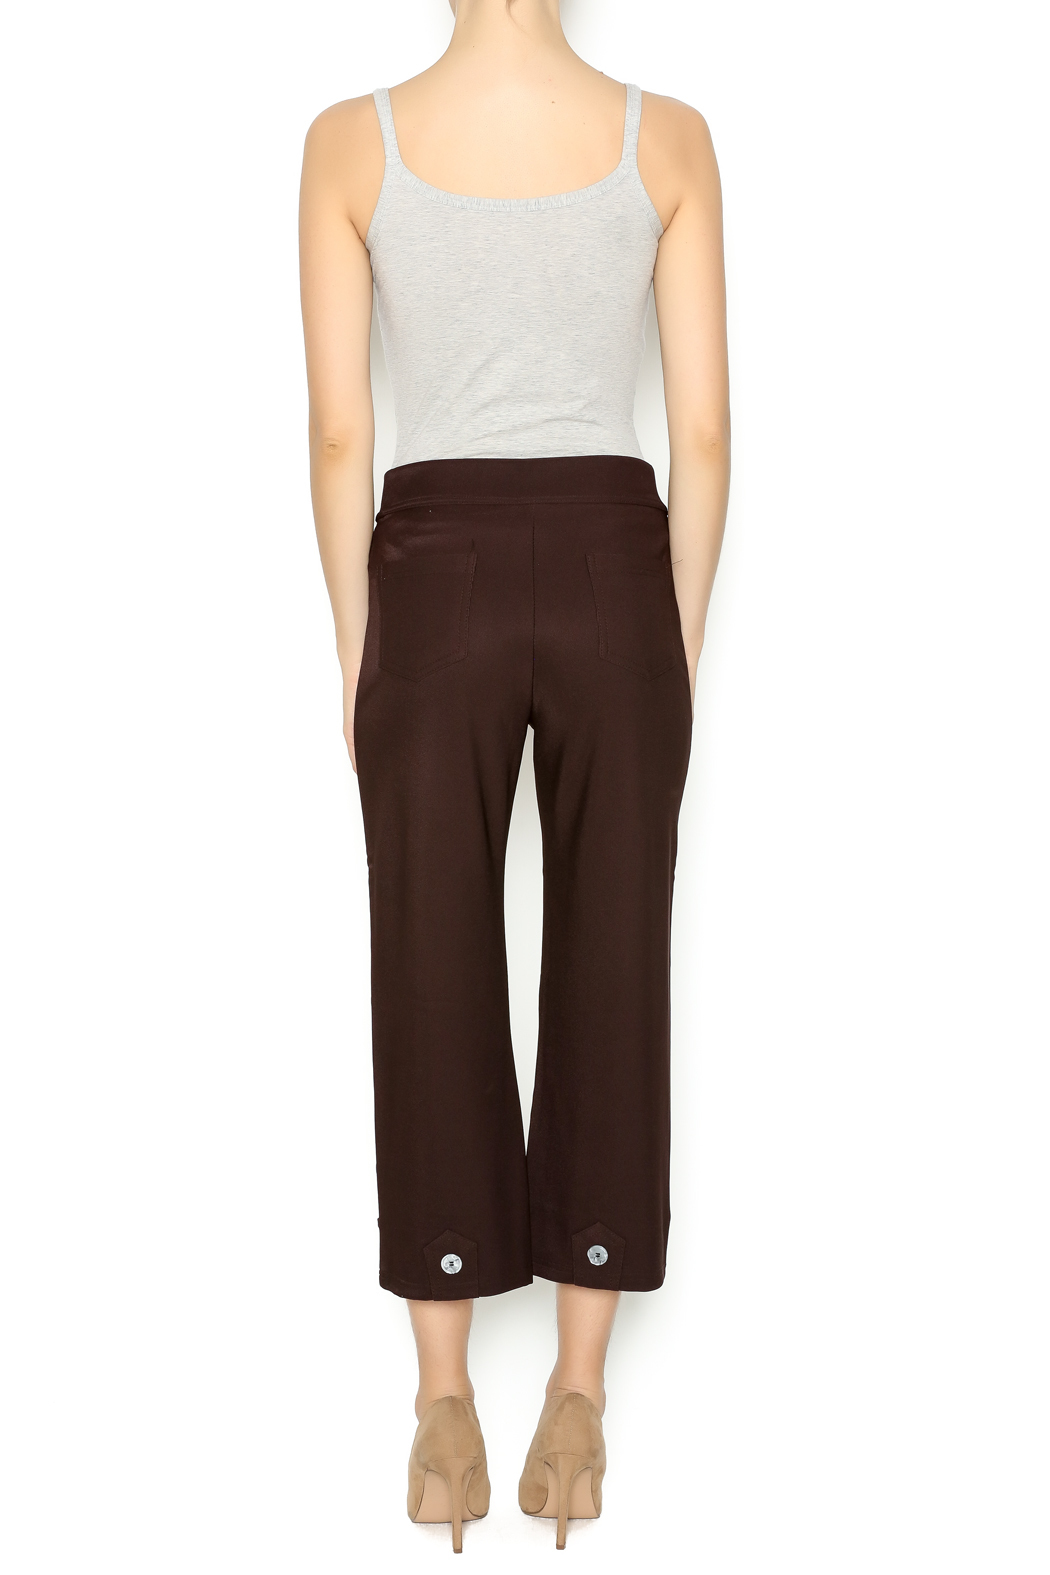 Talk of the Walk 4-Button Boot Pant - Side Cropped Image